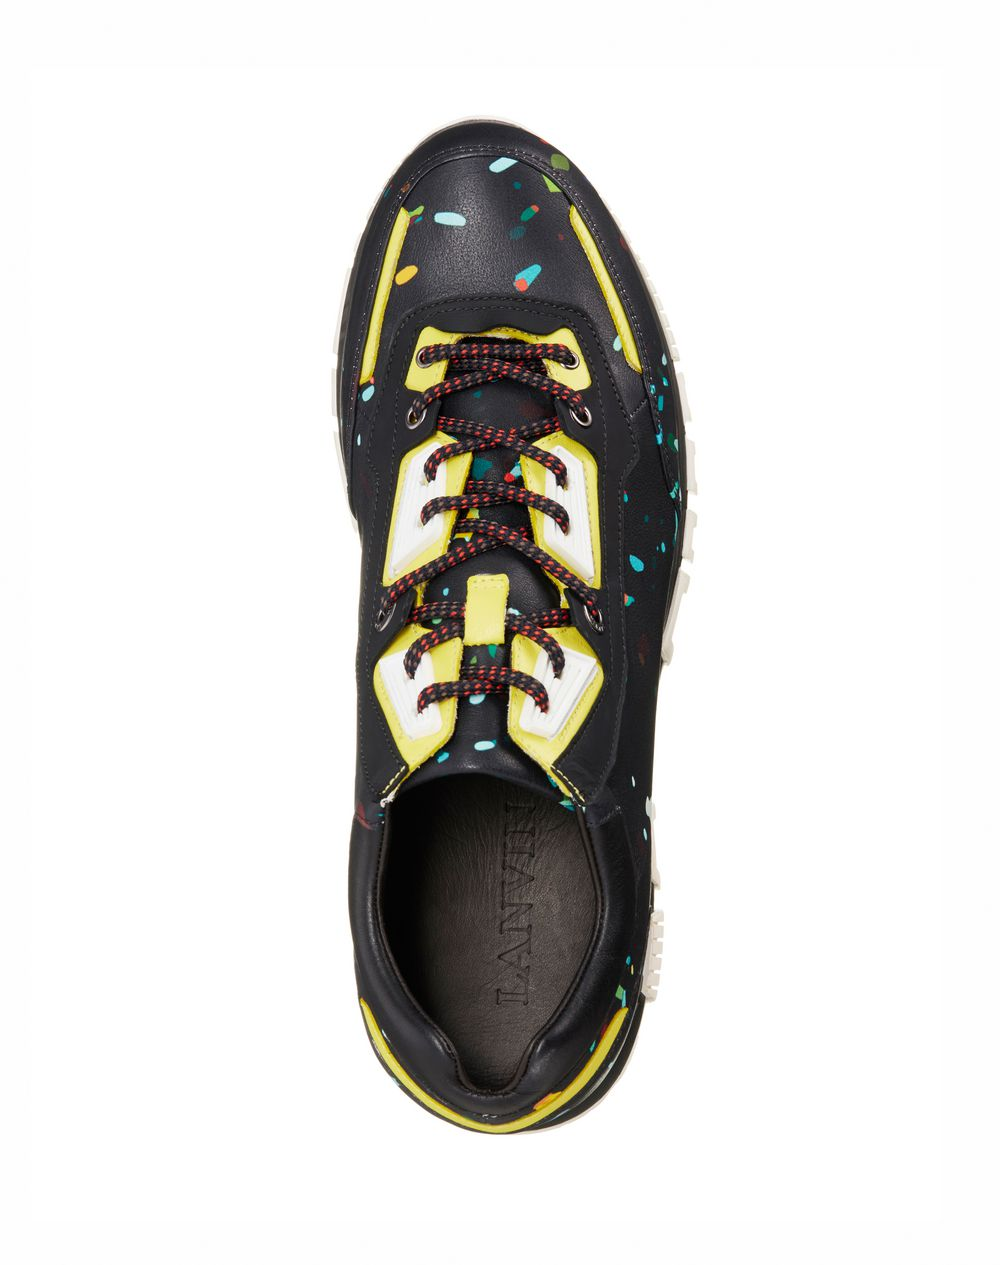 Runners in printed polyester and calfskin - Lanvin